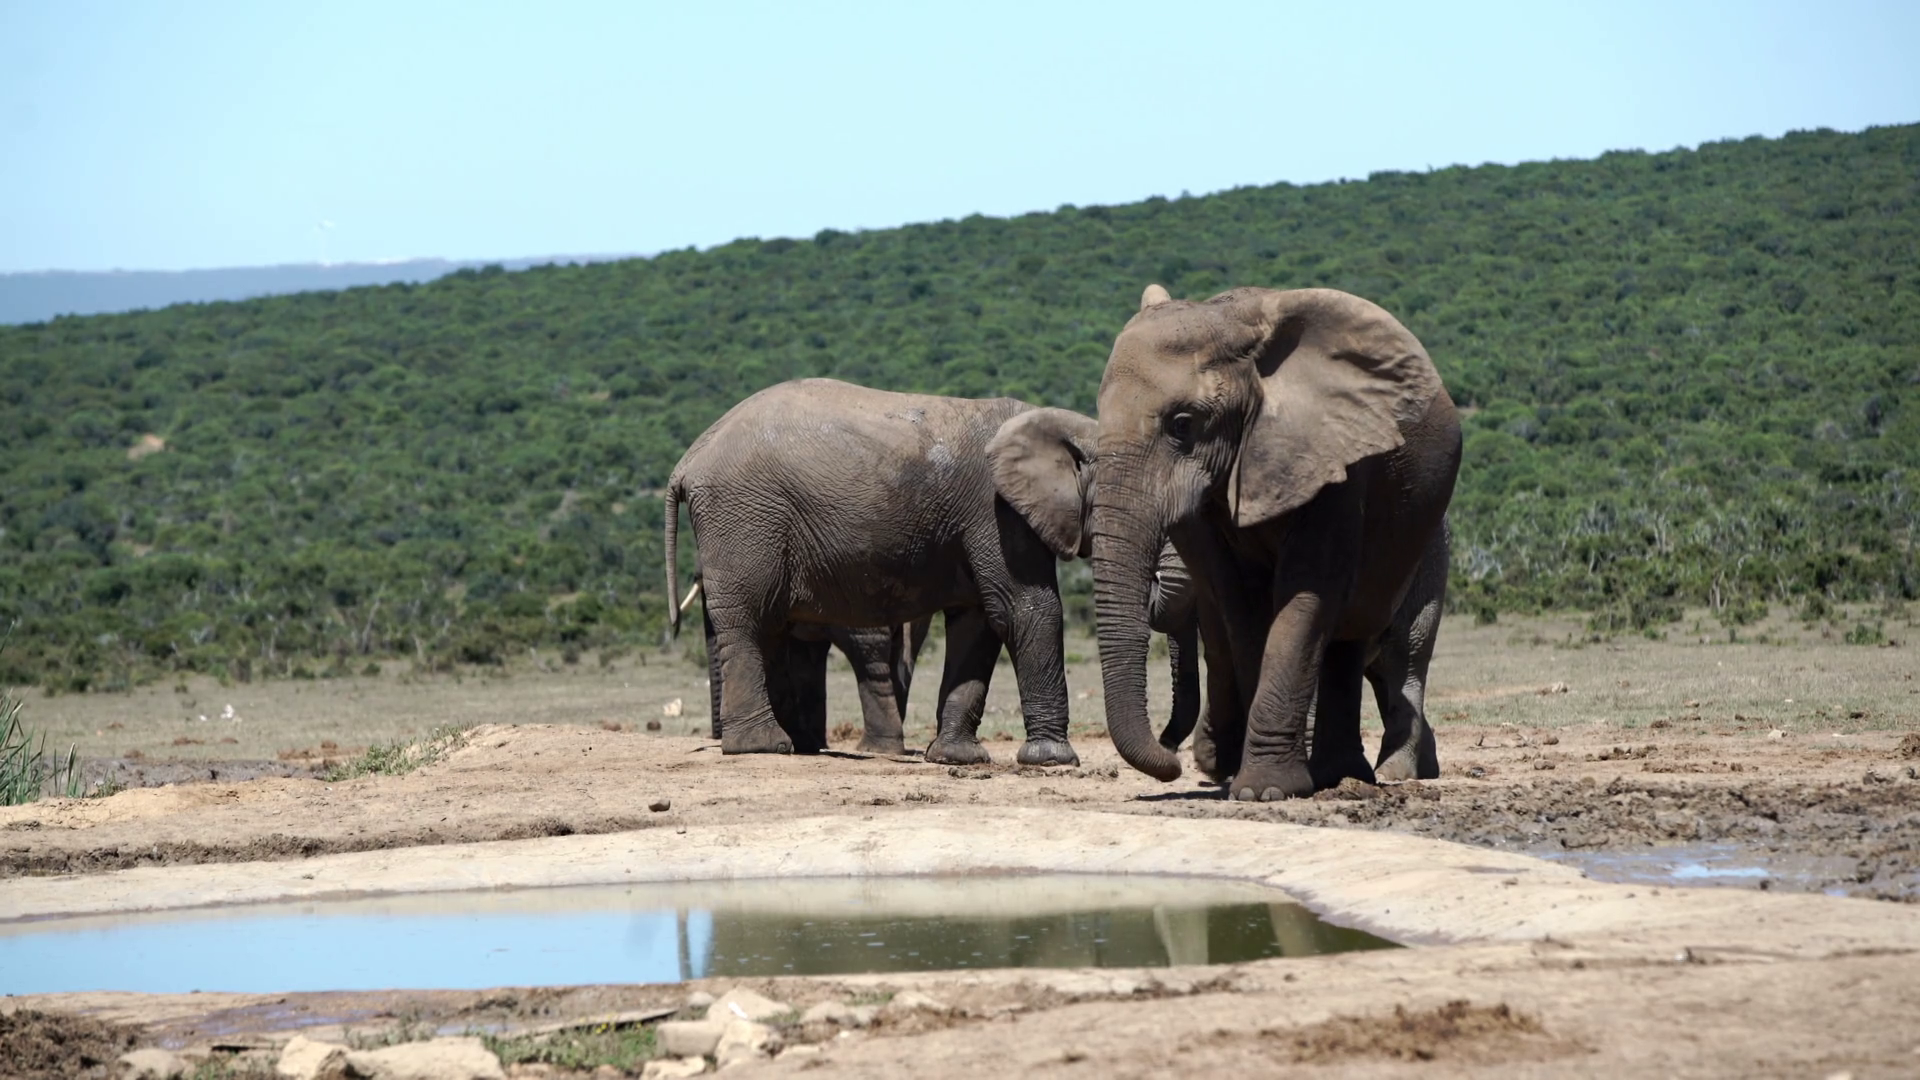 Elephant Stretching His Leg Around The Waterpool In Addo Elephant National Park South Africa Stock Video Footage Storyblocks Download this premium photo about elephant leg isolated, and discover more than 6 million professional stock photos on freepik. storyblocks